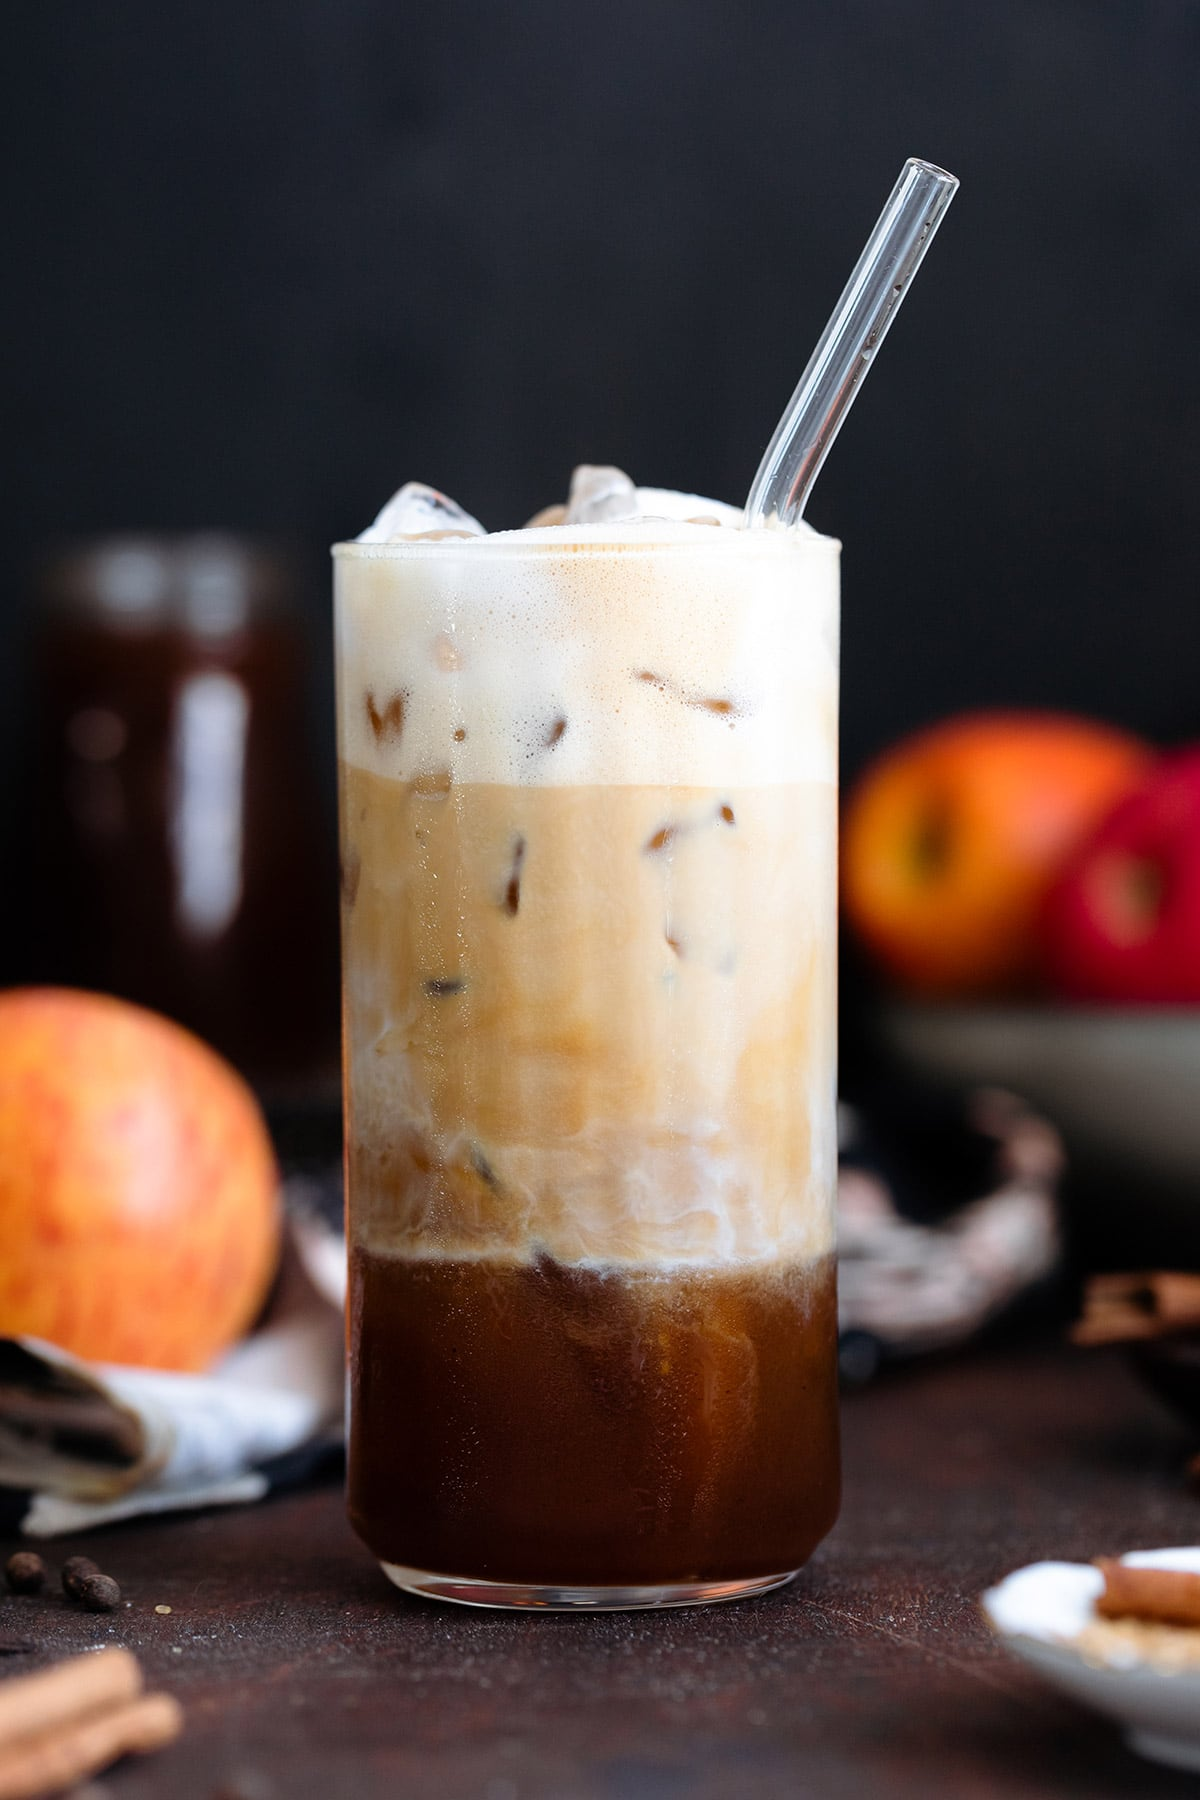 Espresso slowly mixing with frothy milk in a tall glass filled with ice.